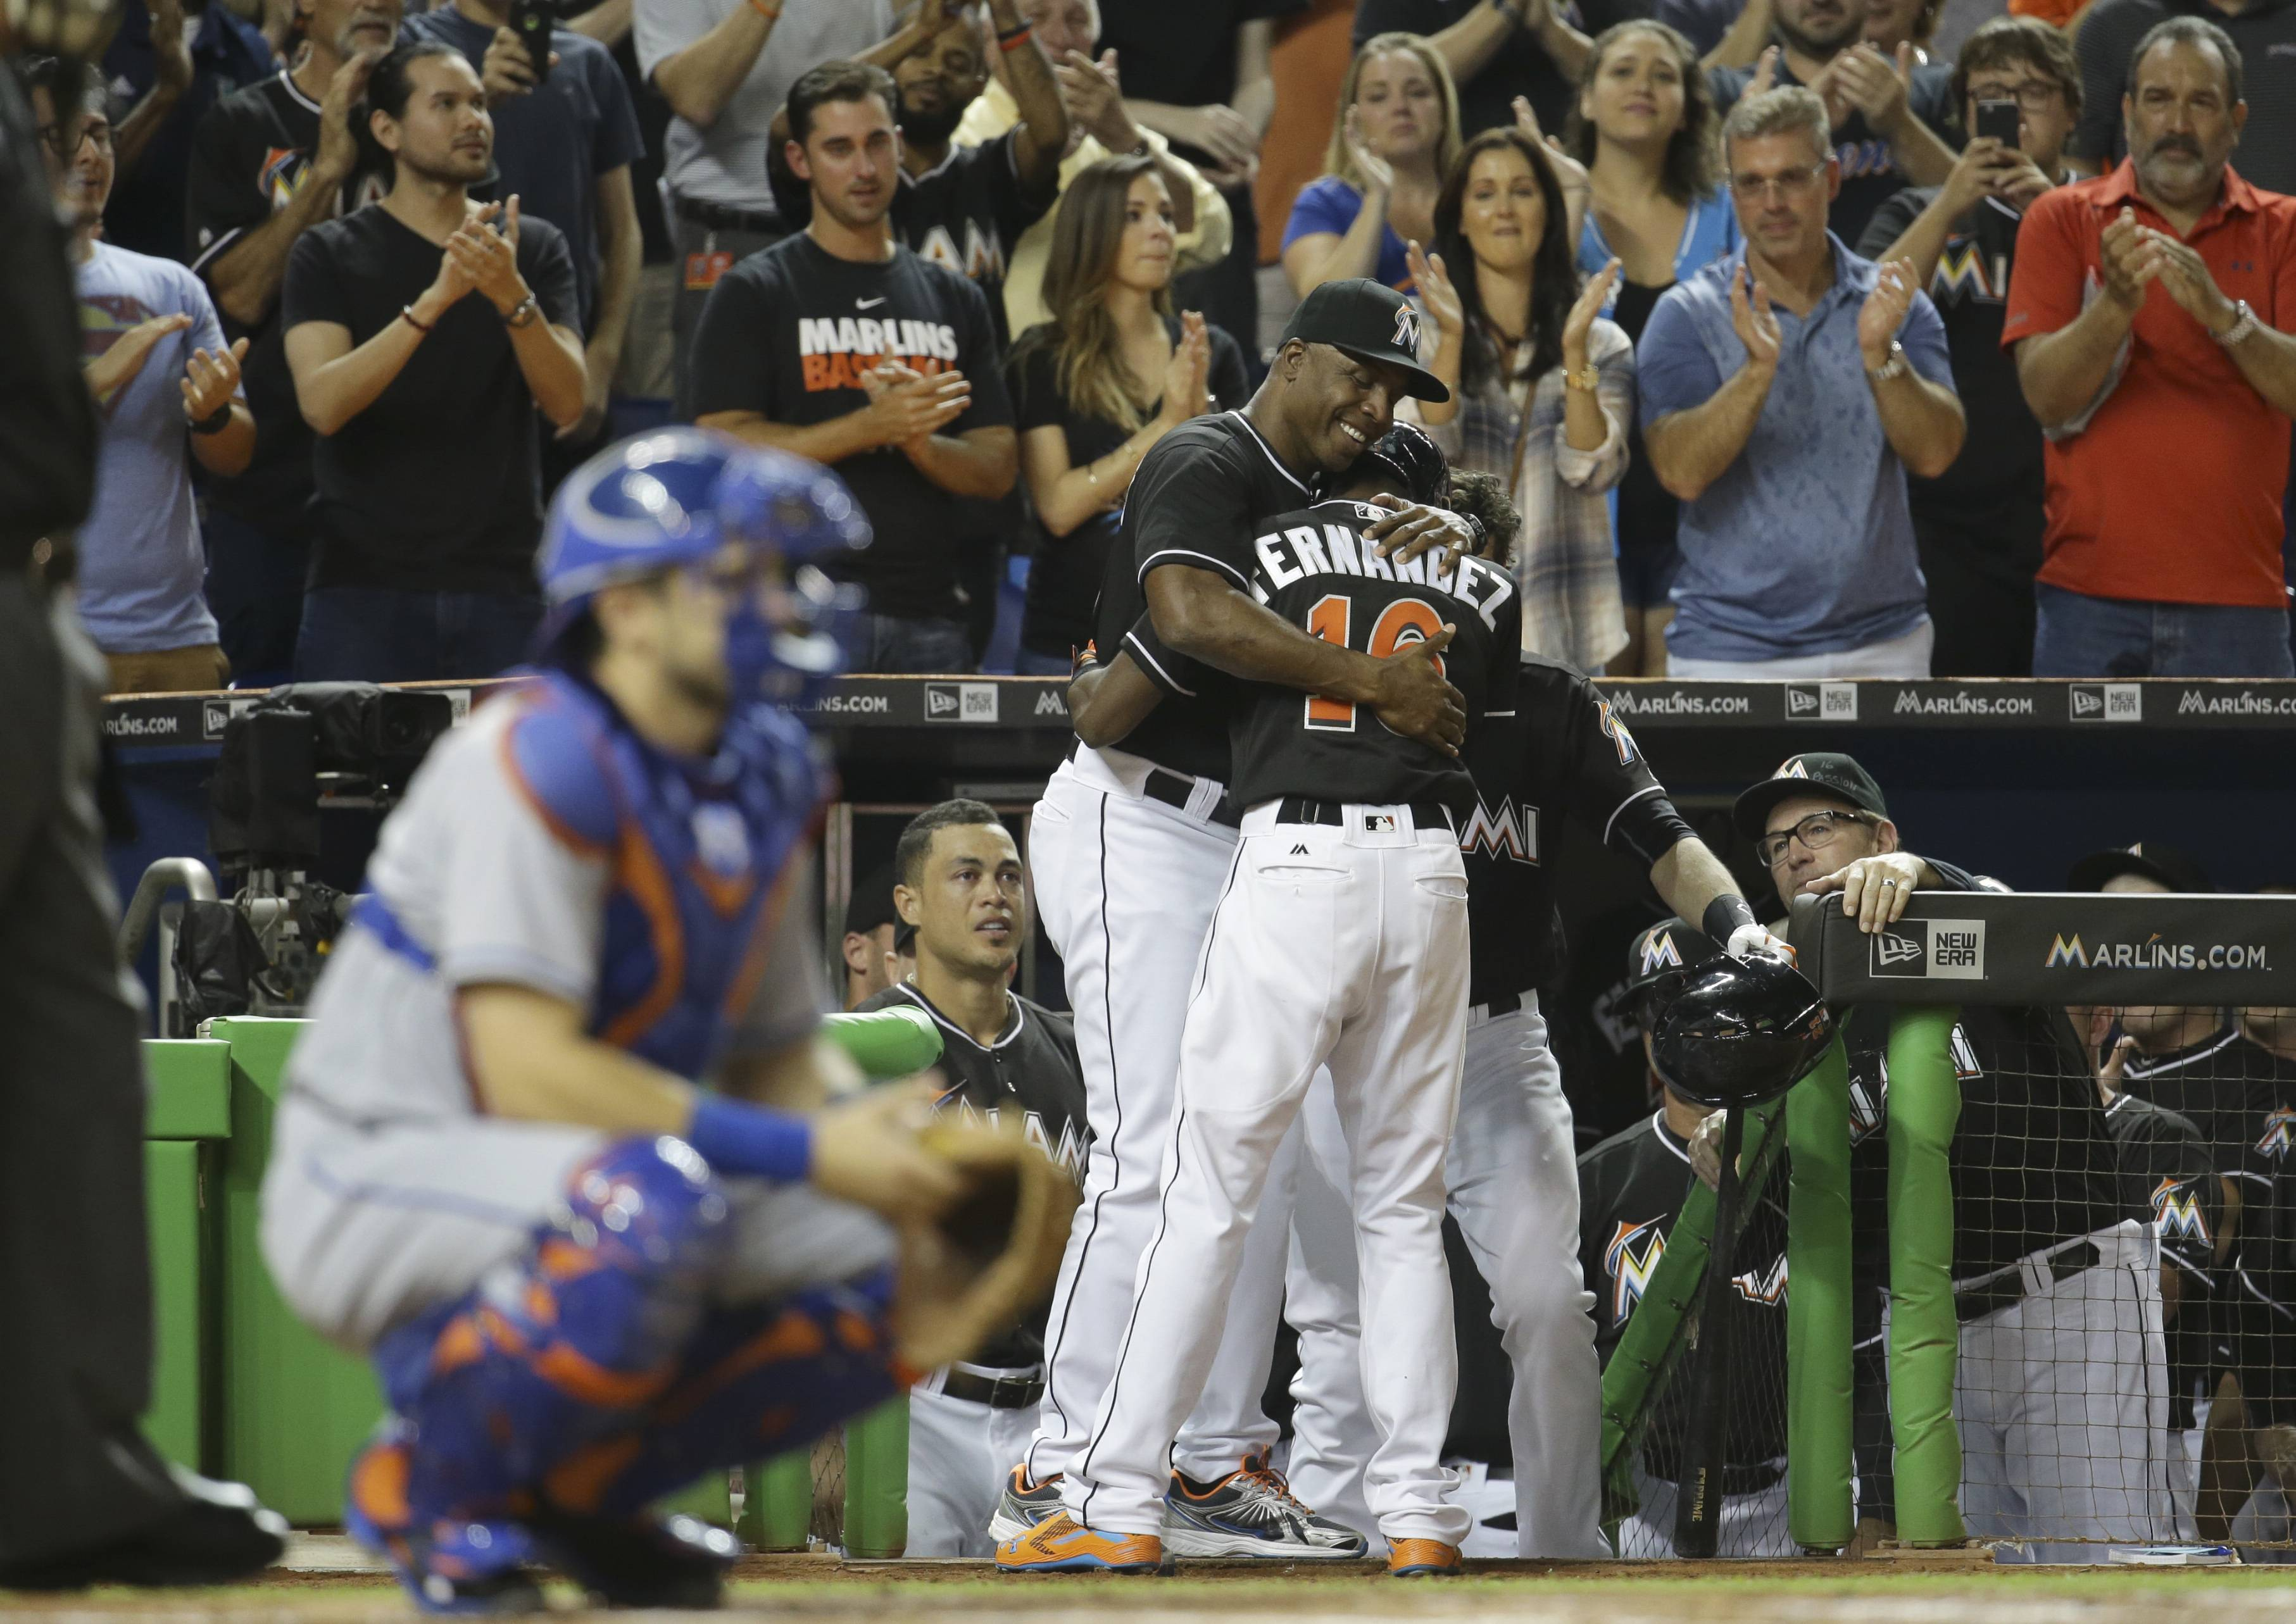 Miami Marlins hitting coach Barry Bonds, left, hugs Dee Gordon, right, after he hit a solo home run during the first inning in a baseball game against the New York Mets, Monday in Miami.